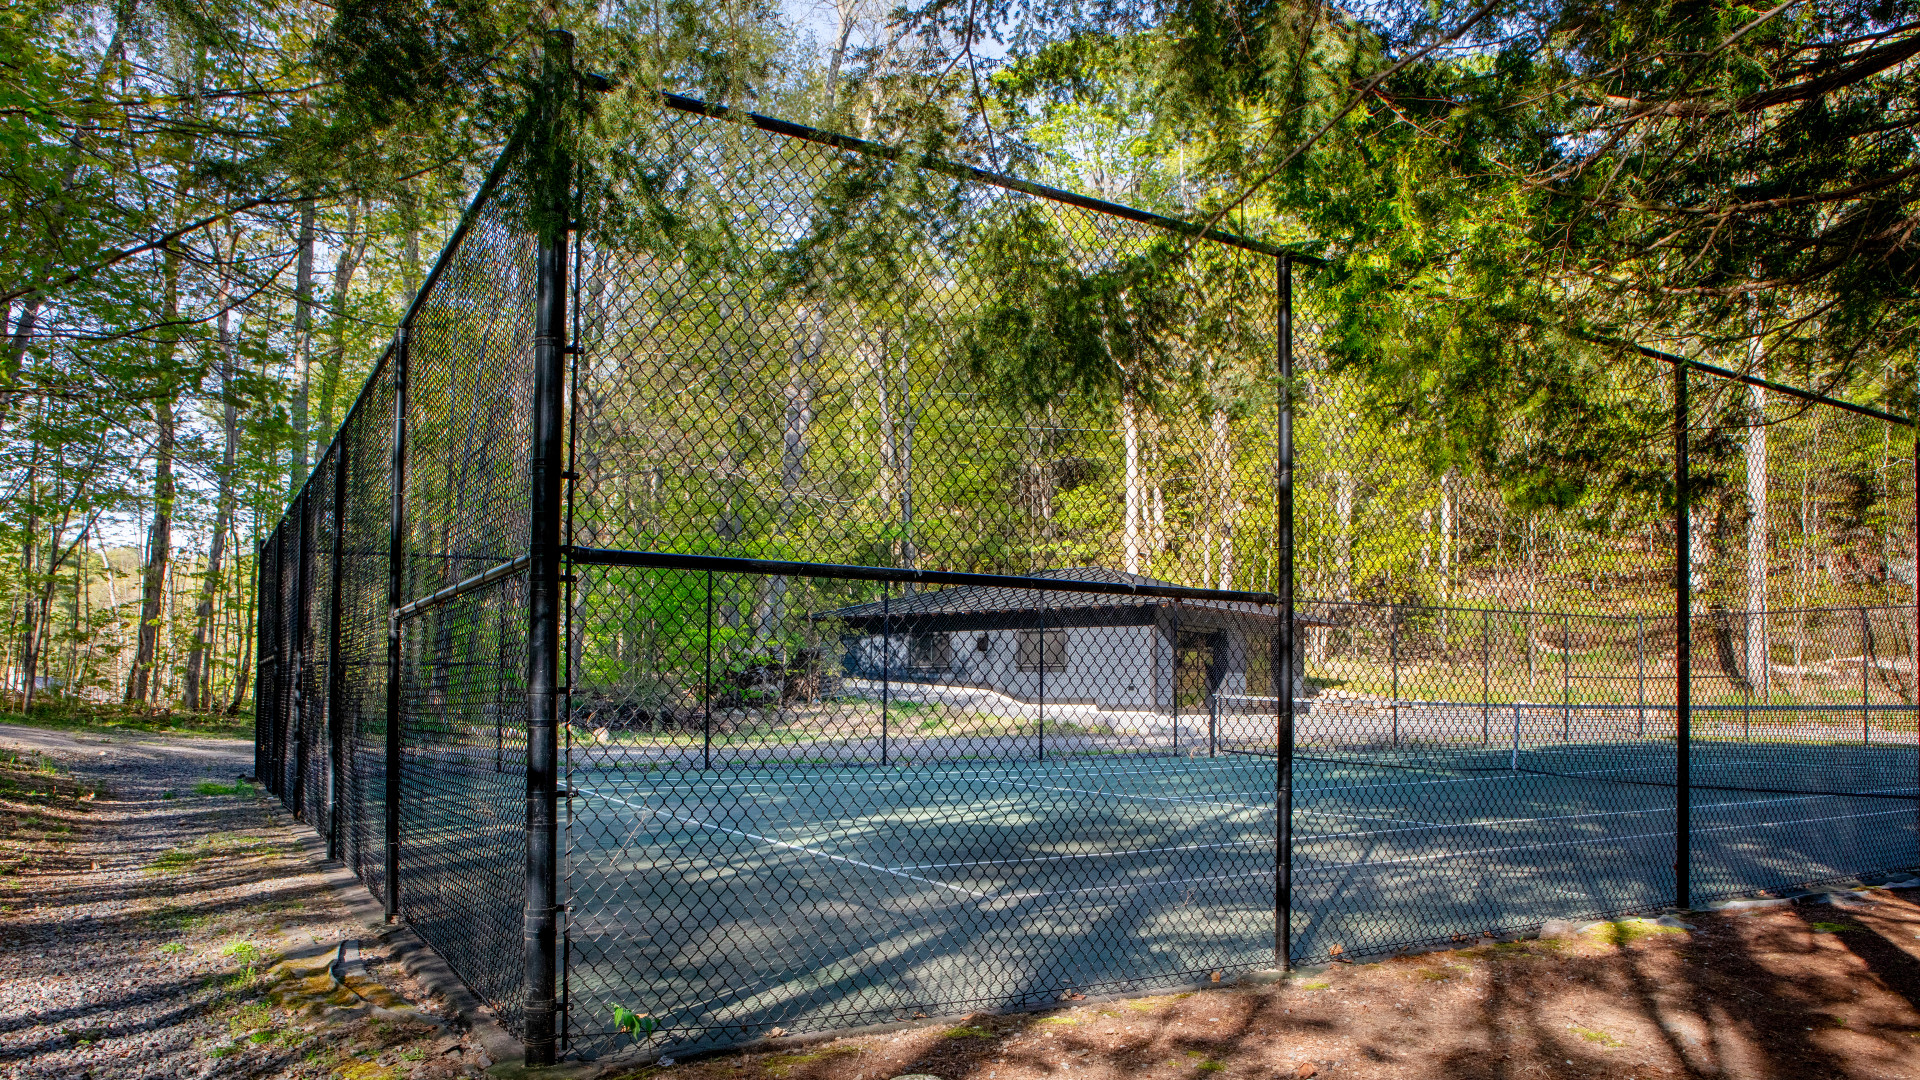 A photo of the tennis court surrounded by trees.